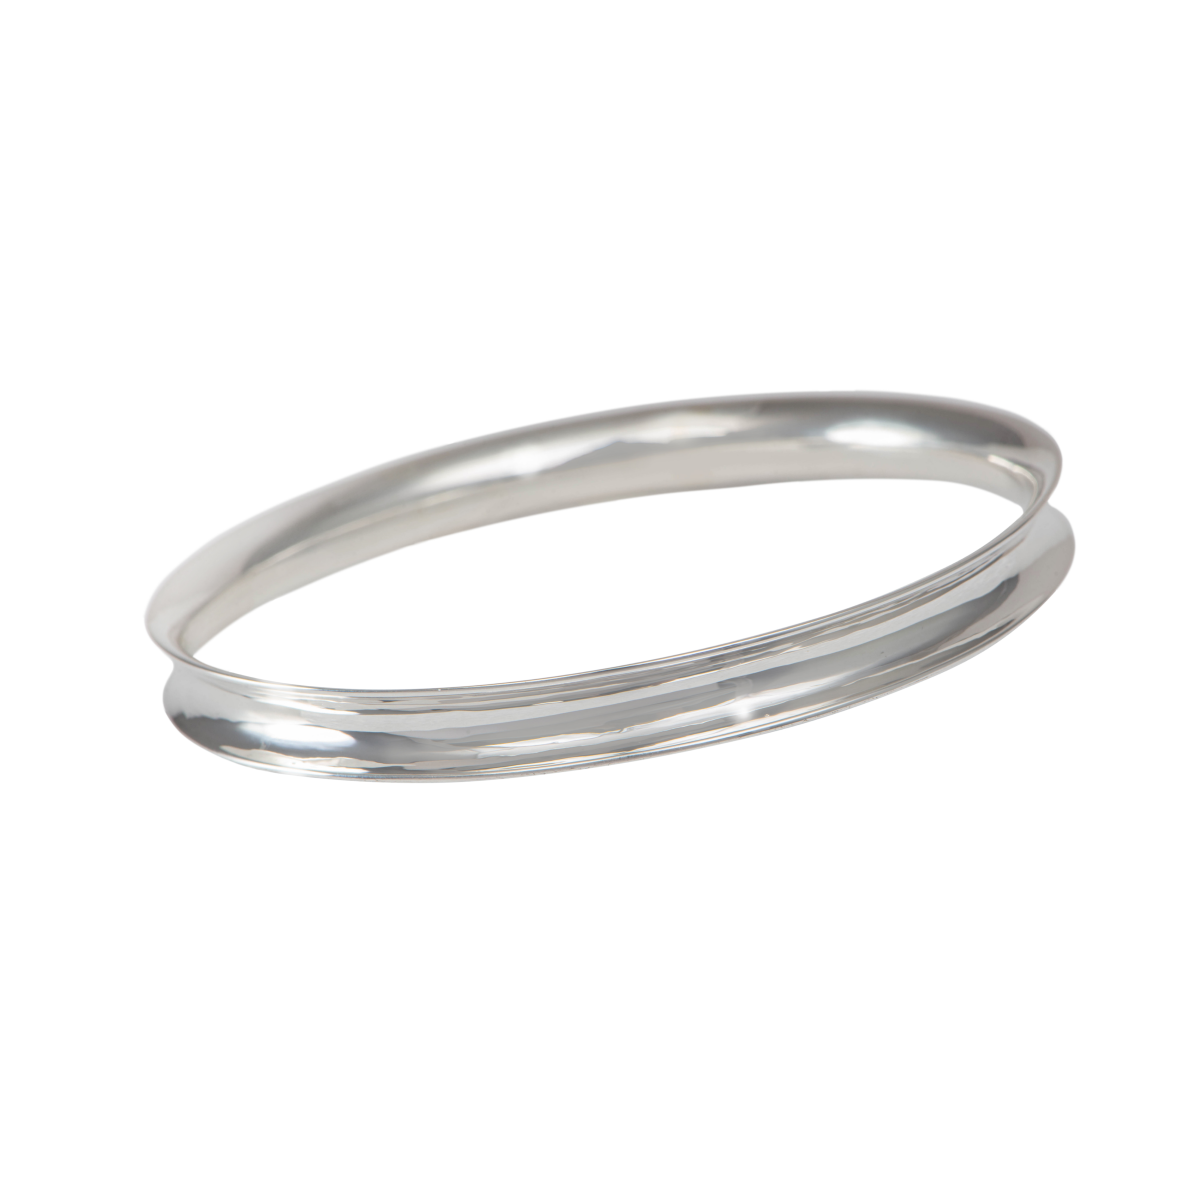 Chunky Sterling Silver 7mm wide Concave Bangle with a Polished Shiny Finish